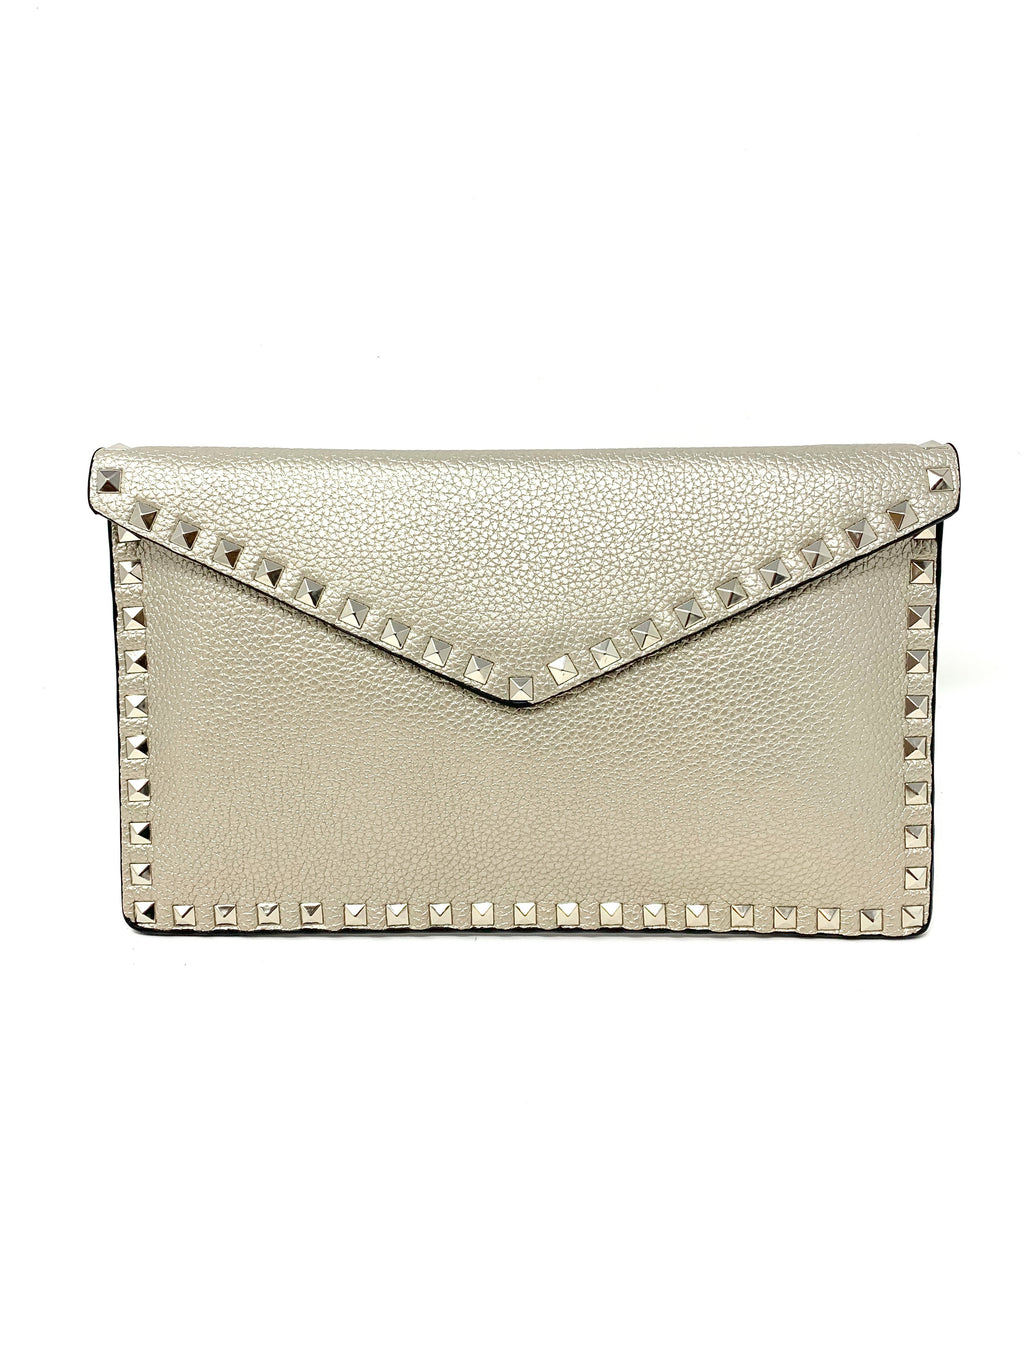 Studded Envelope Clutch in Silver